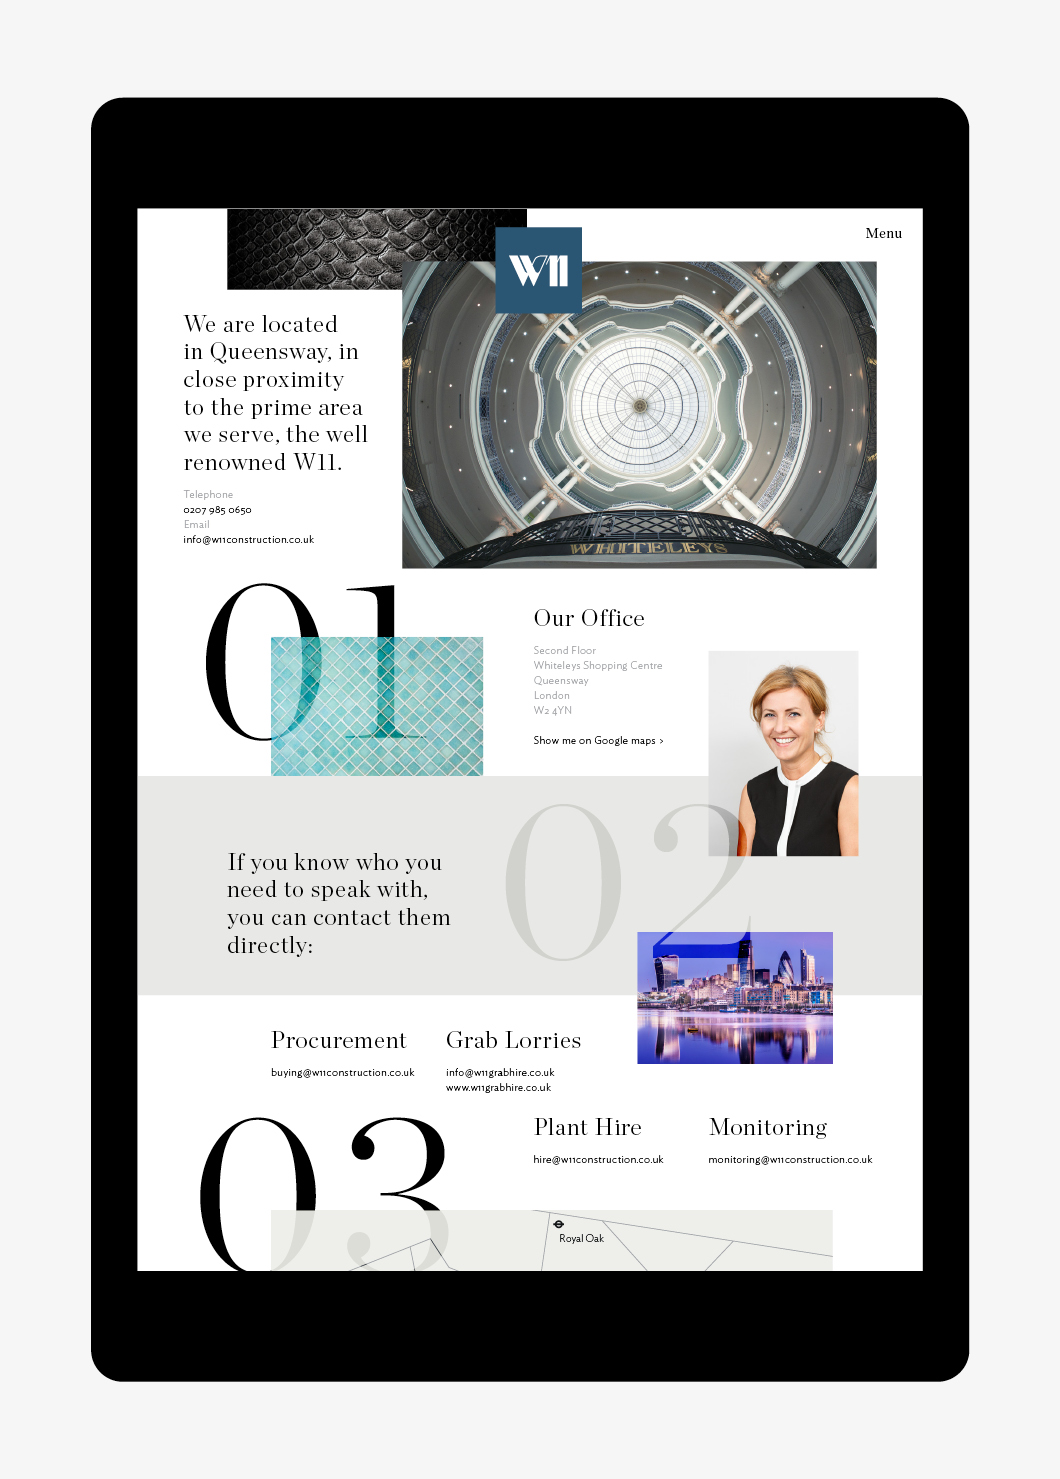 ipad showing web design